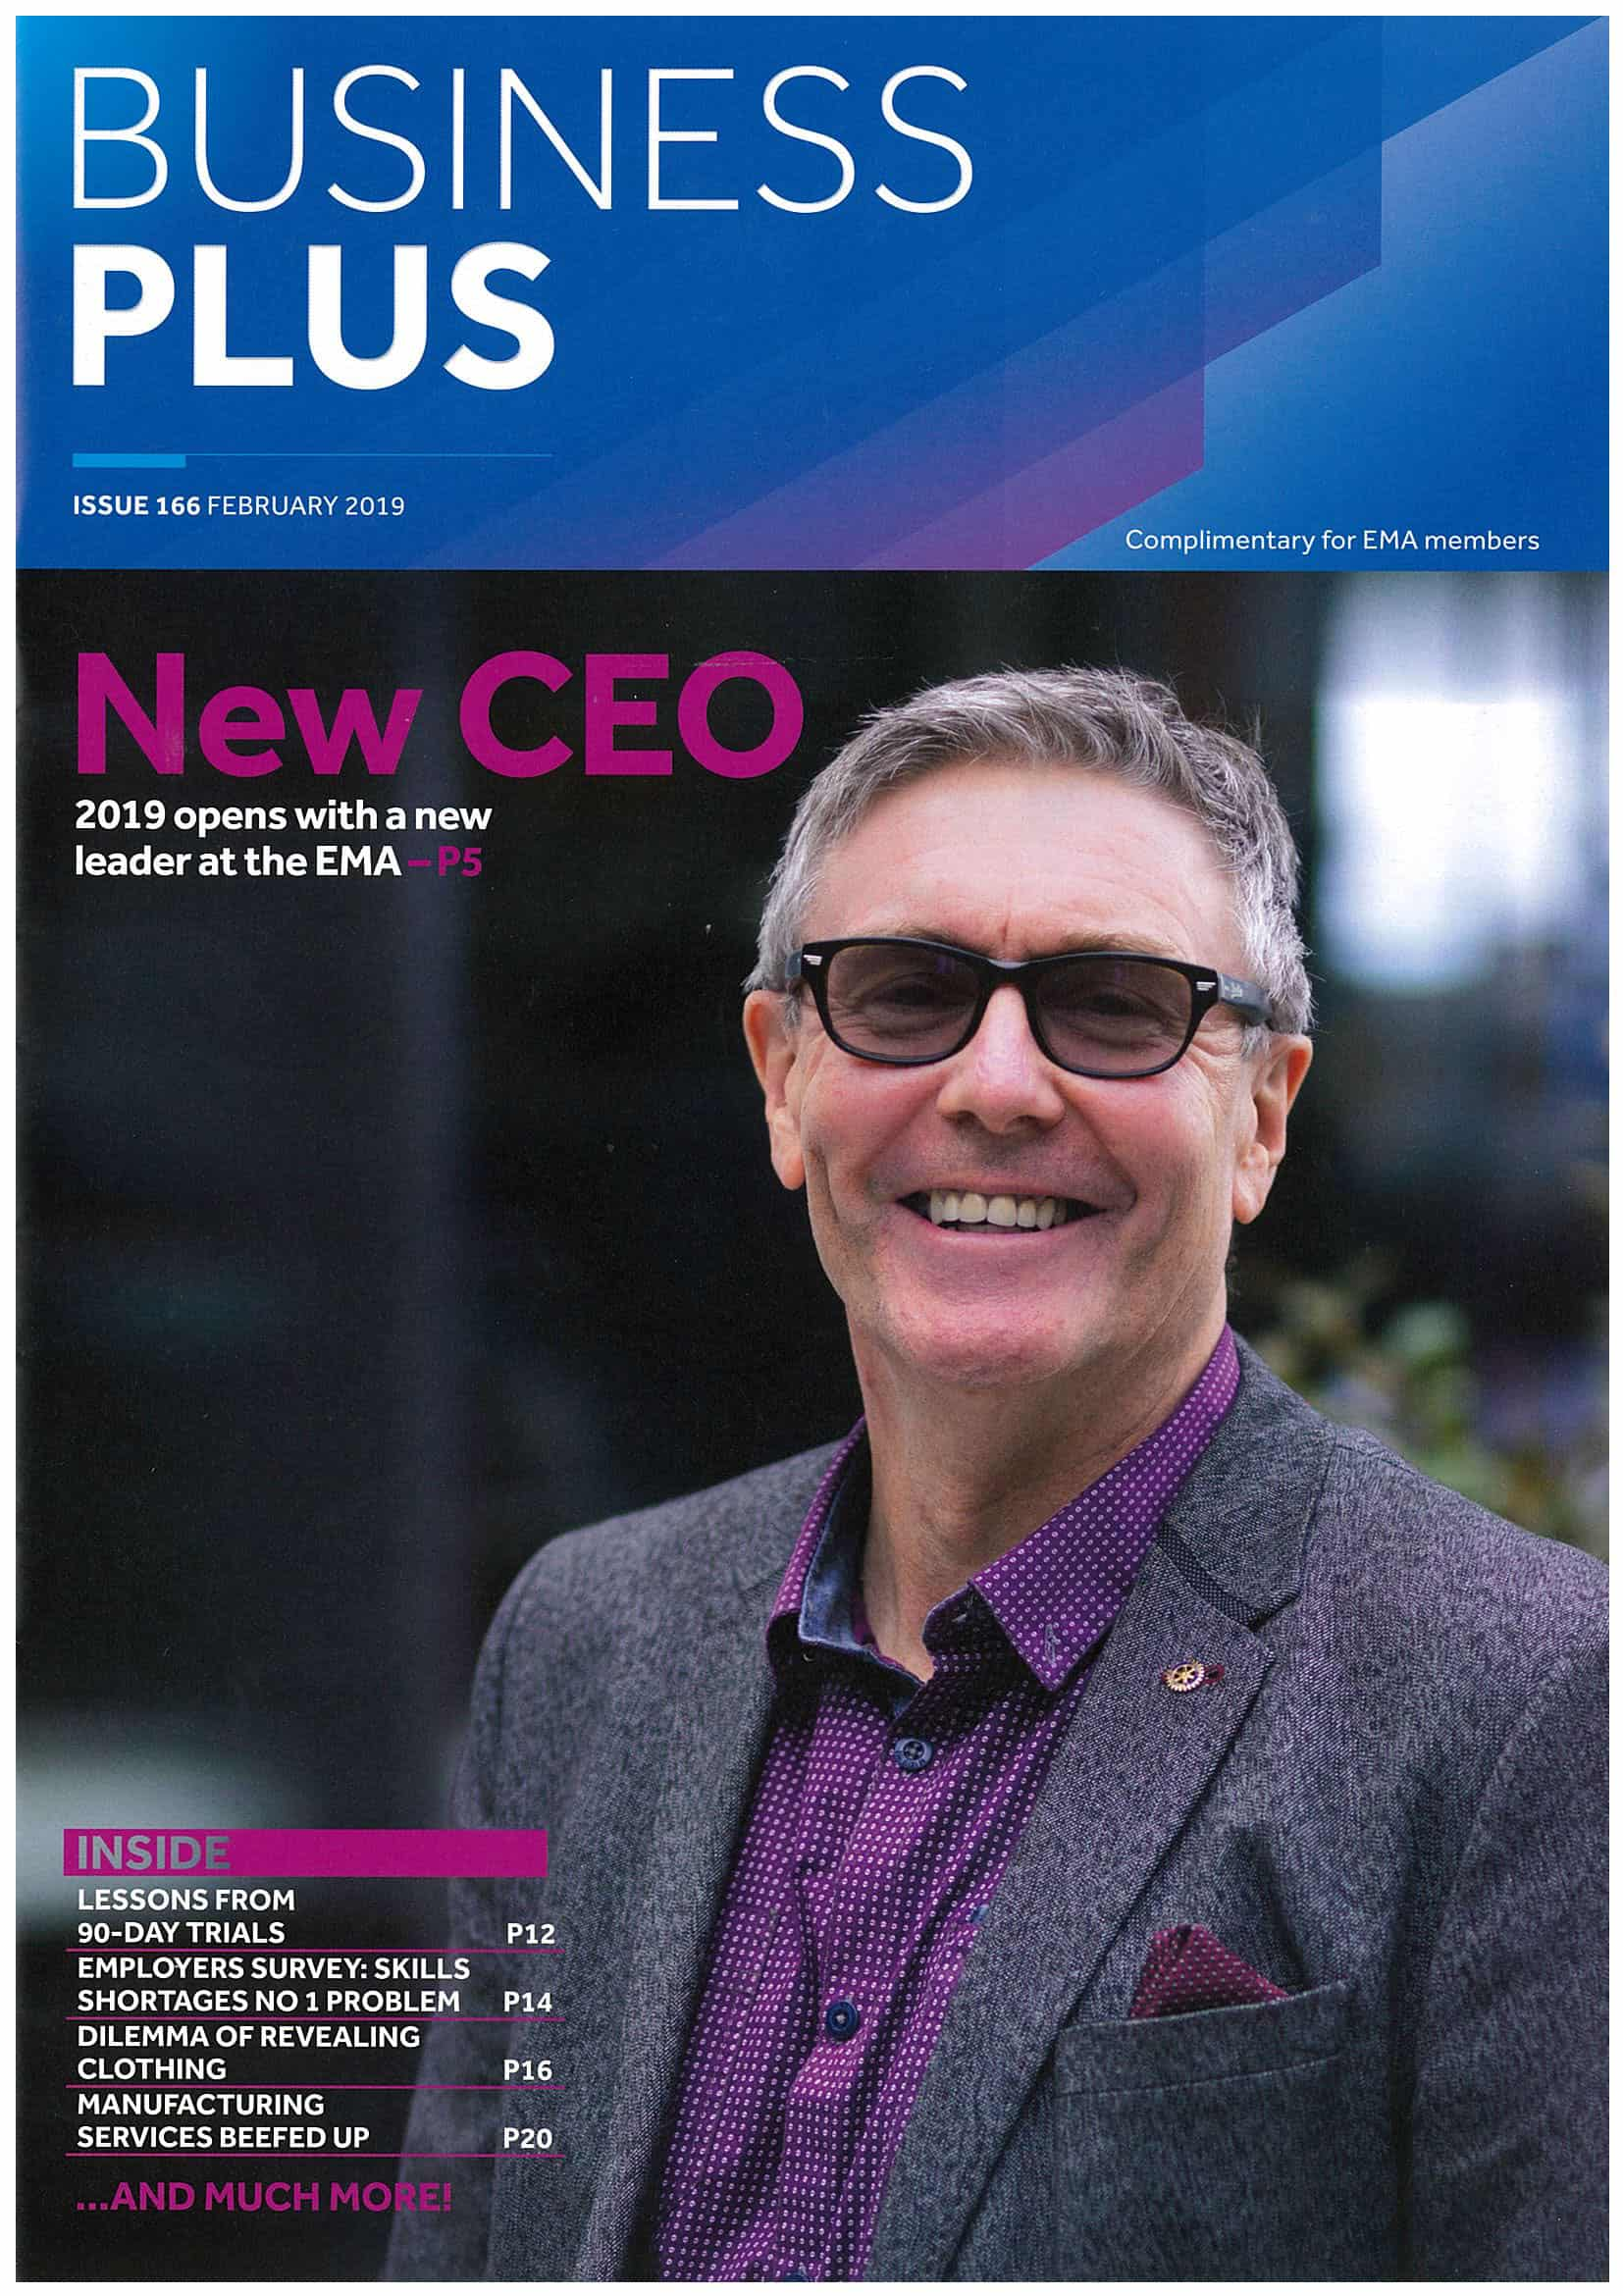 Business Plus Feb 2019